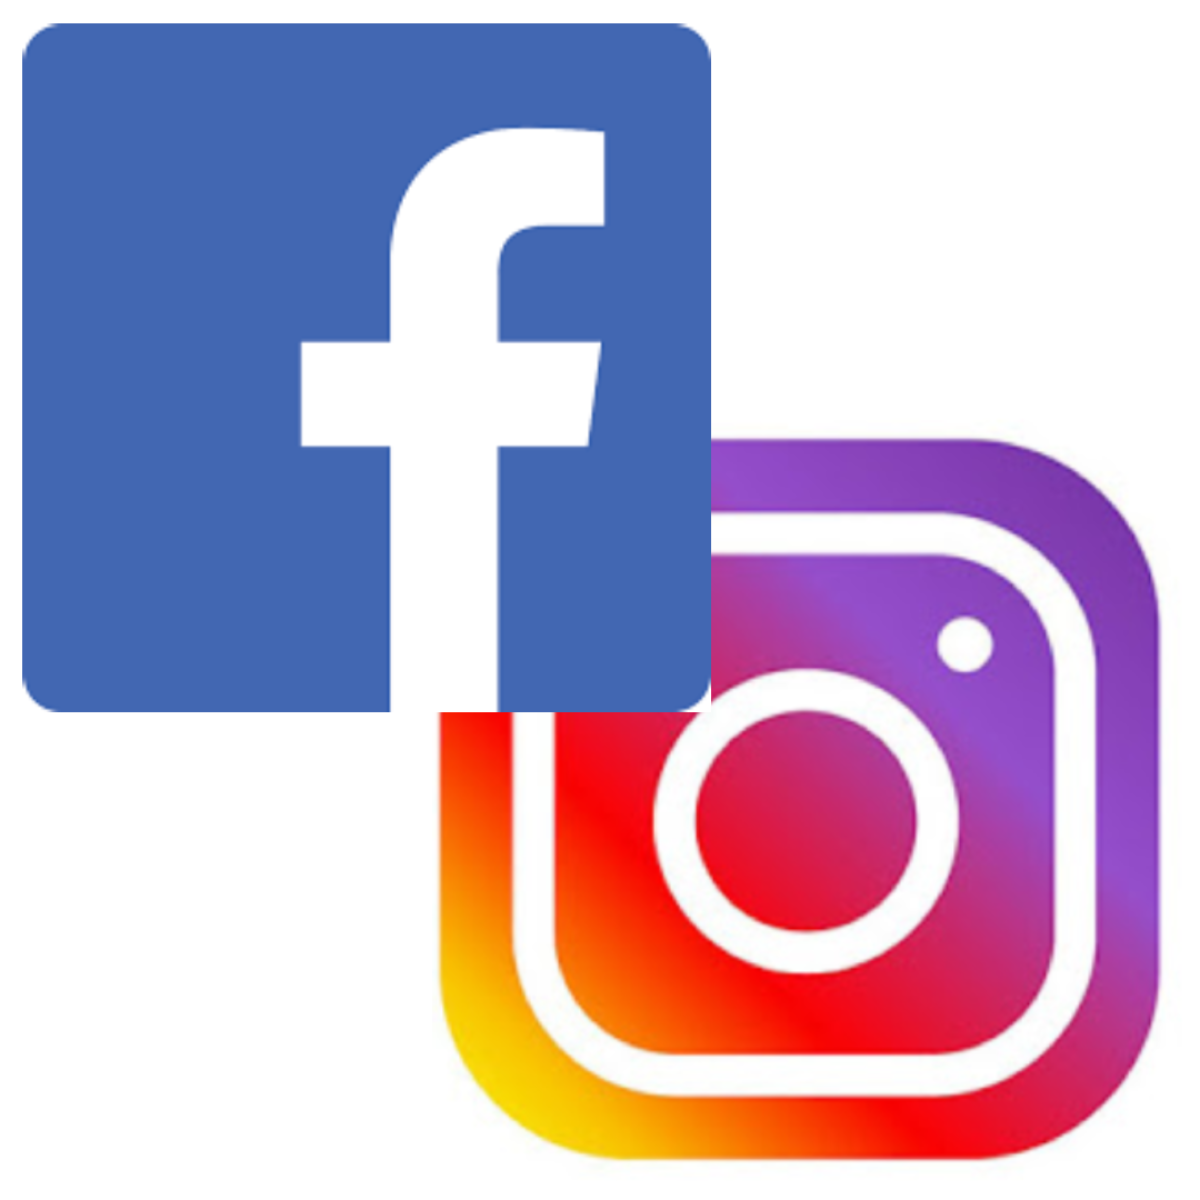 Hire Shopify Experts to integrate Facebook & Instagram Ads app into a Shopify store